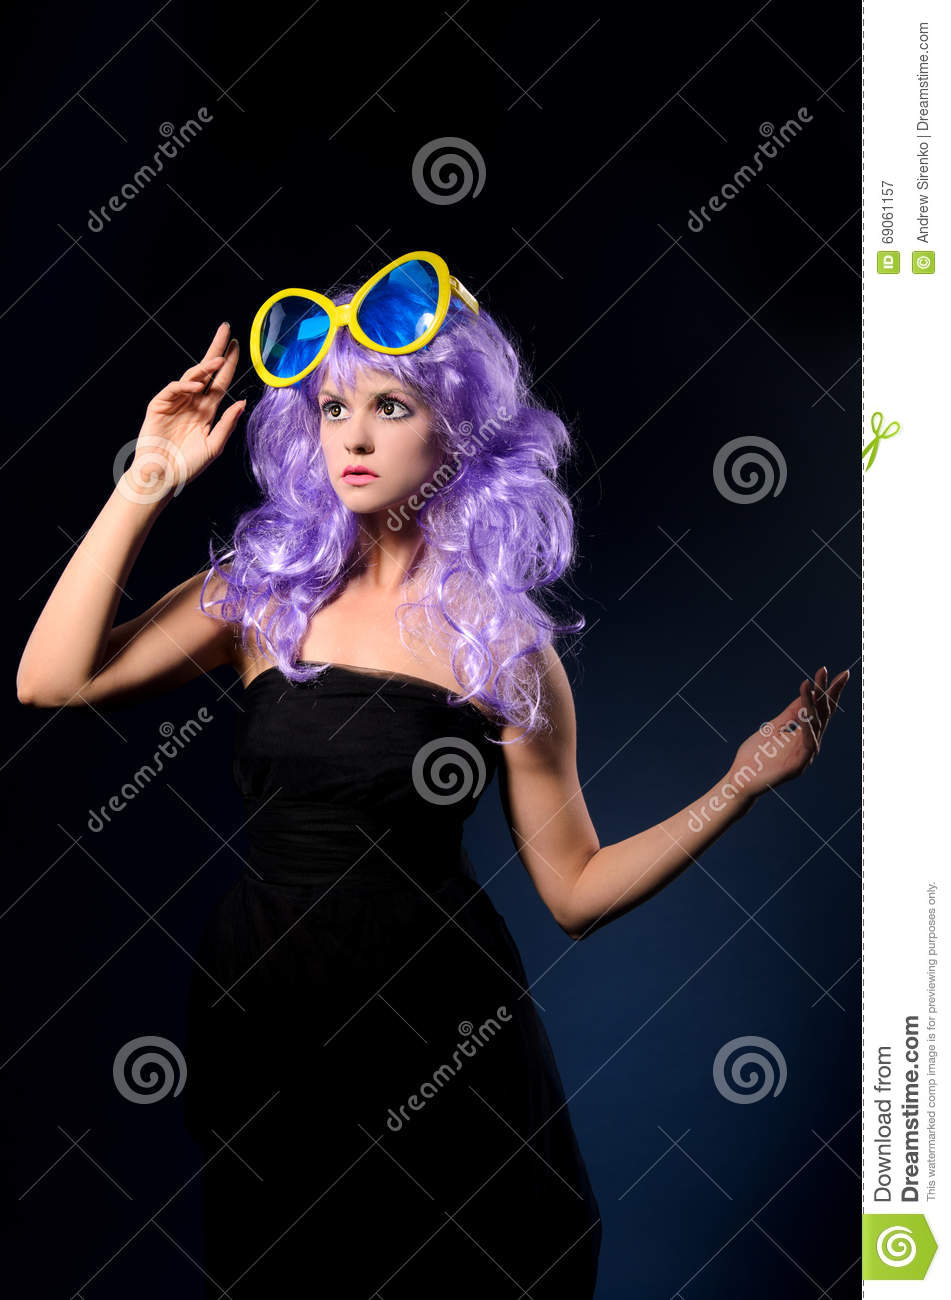 Cosplay Girl In Purple Wig With Big Sunglasses Stock Image - Image ... 734736d4a